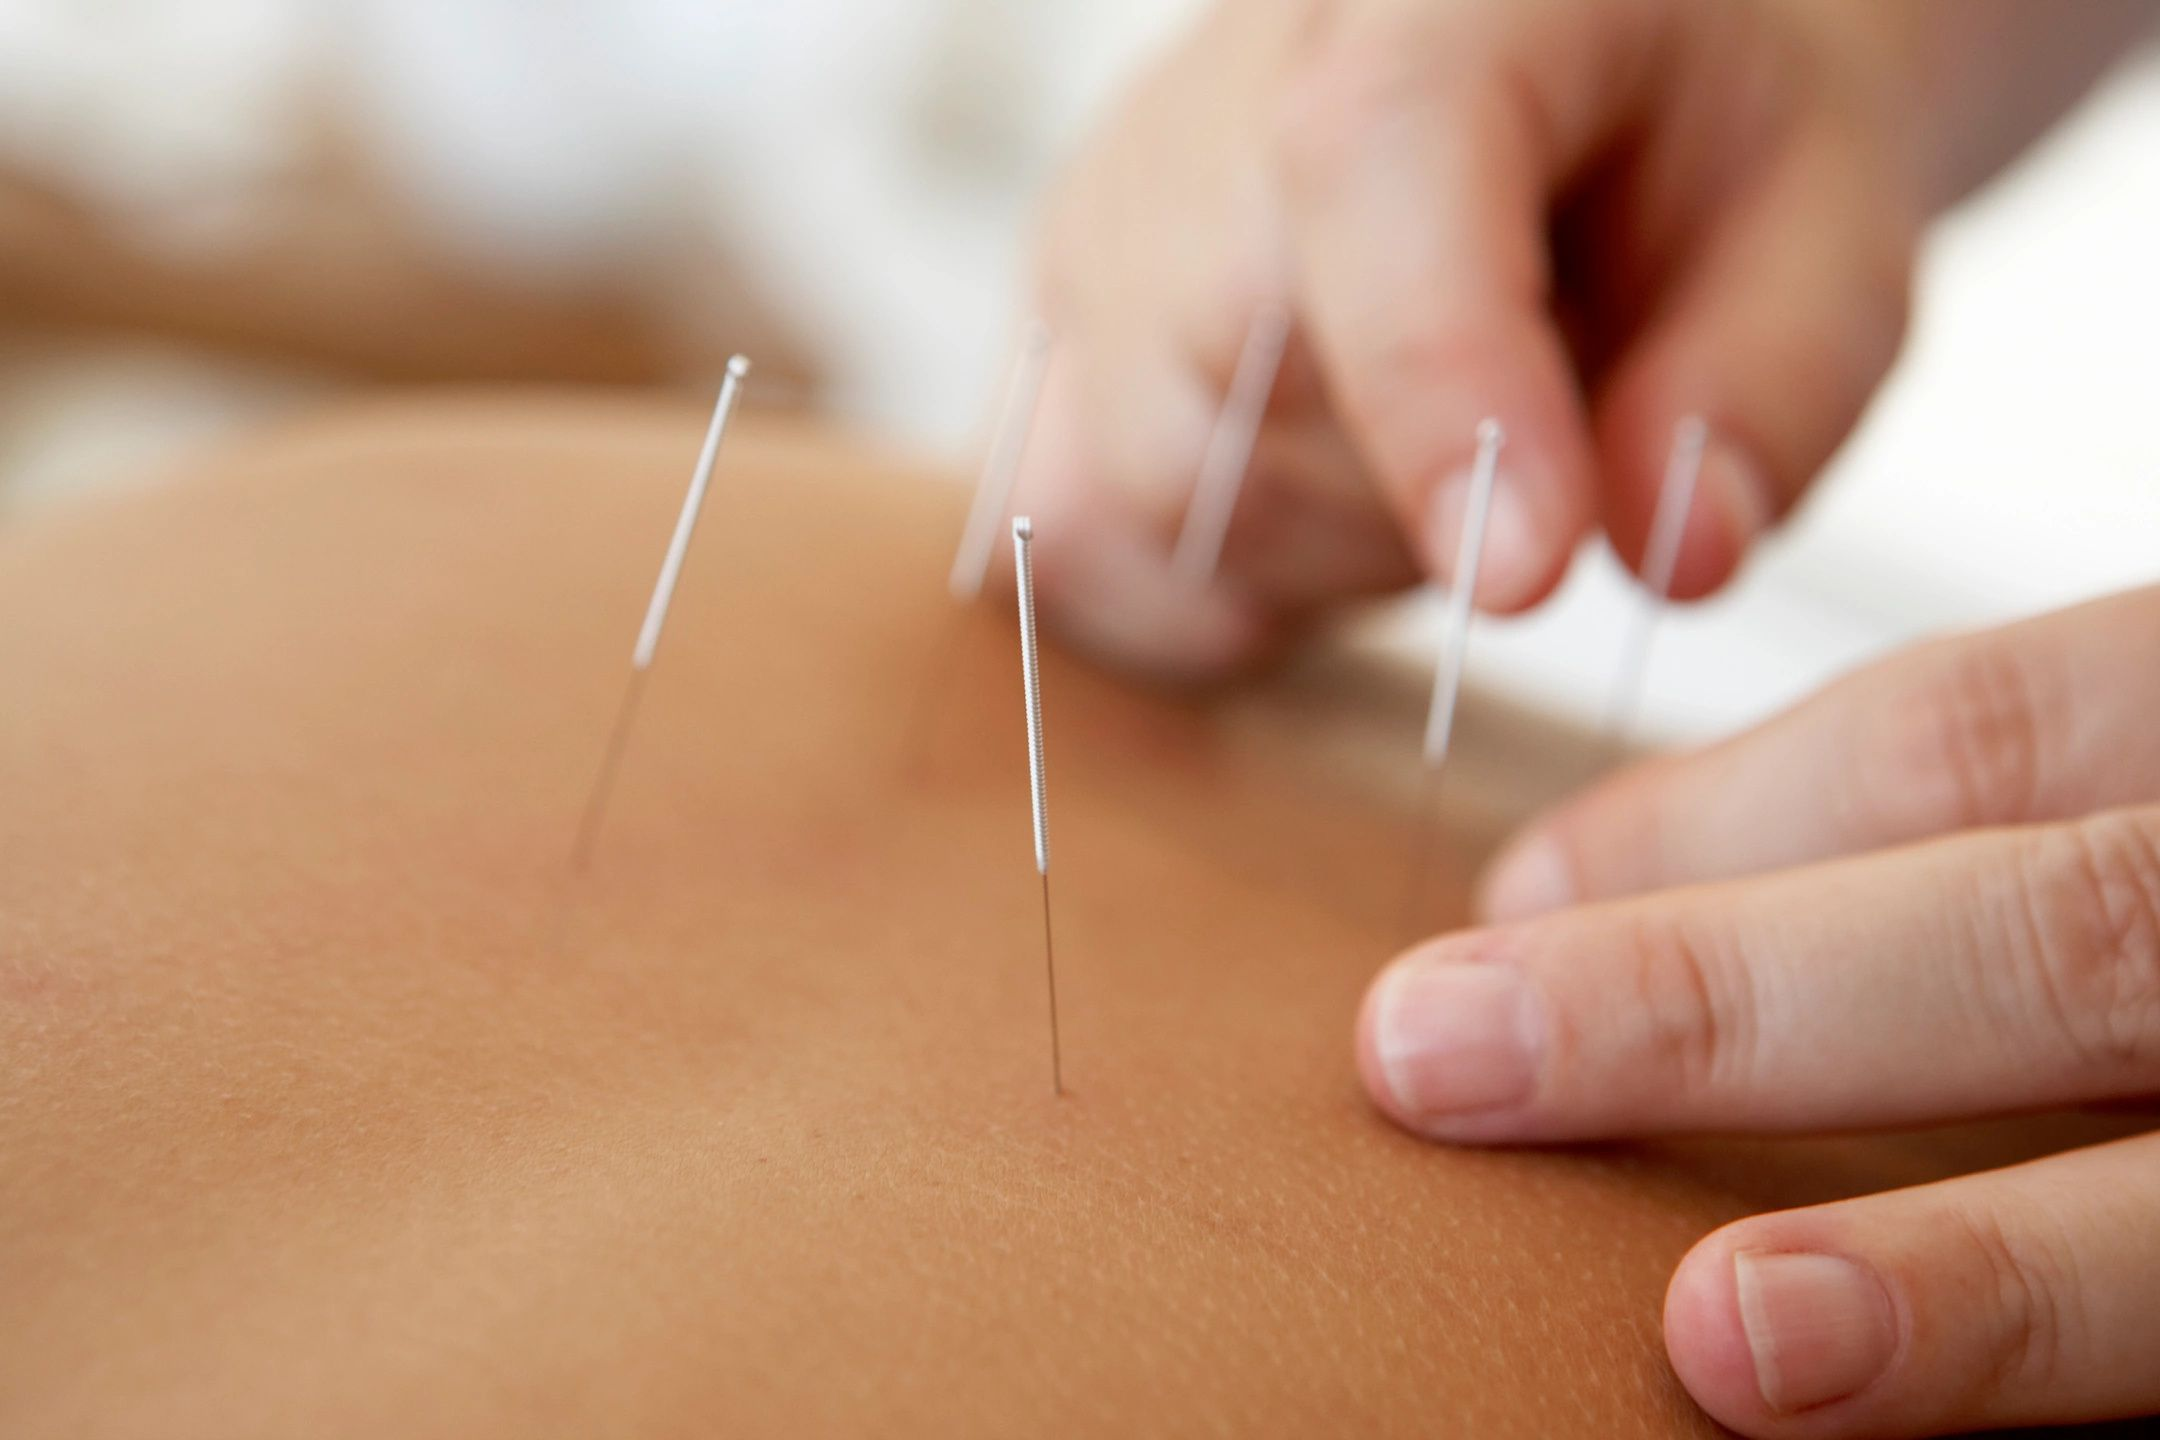 Latest Case Study - Acupuncture, Depression and Anxiety